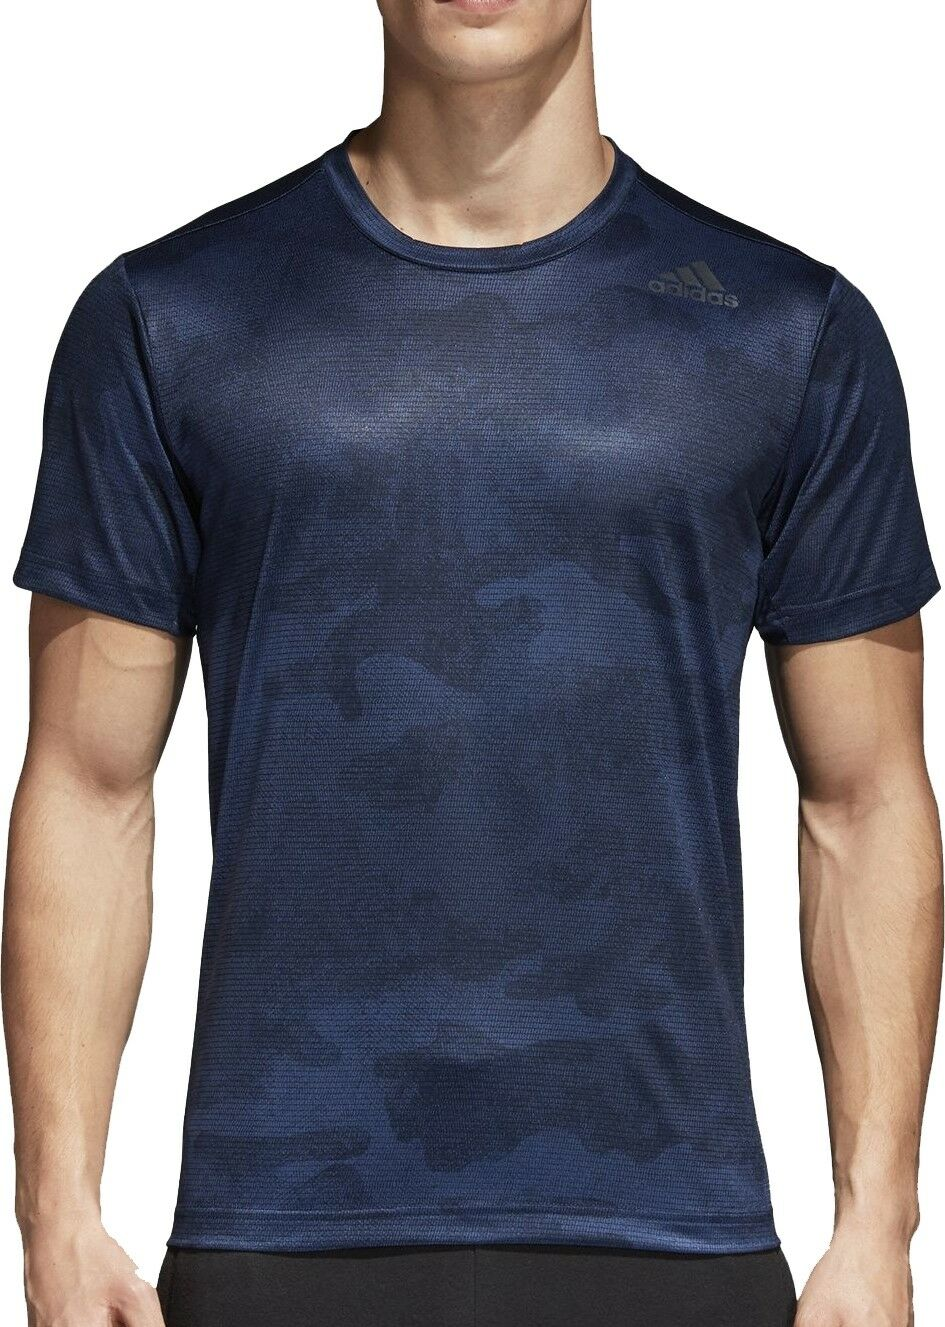 Adidas FreeLift ClimaCool Graphic Mens Short Sleeve Training Top - bluee